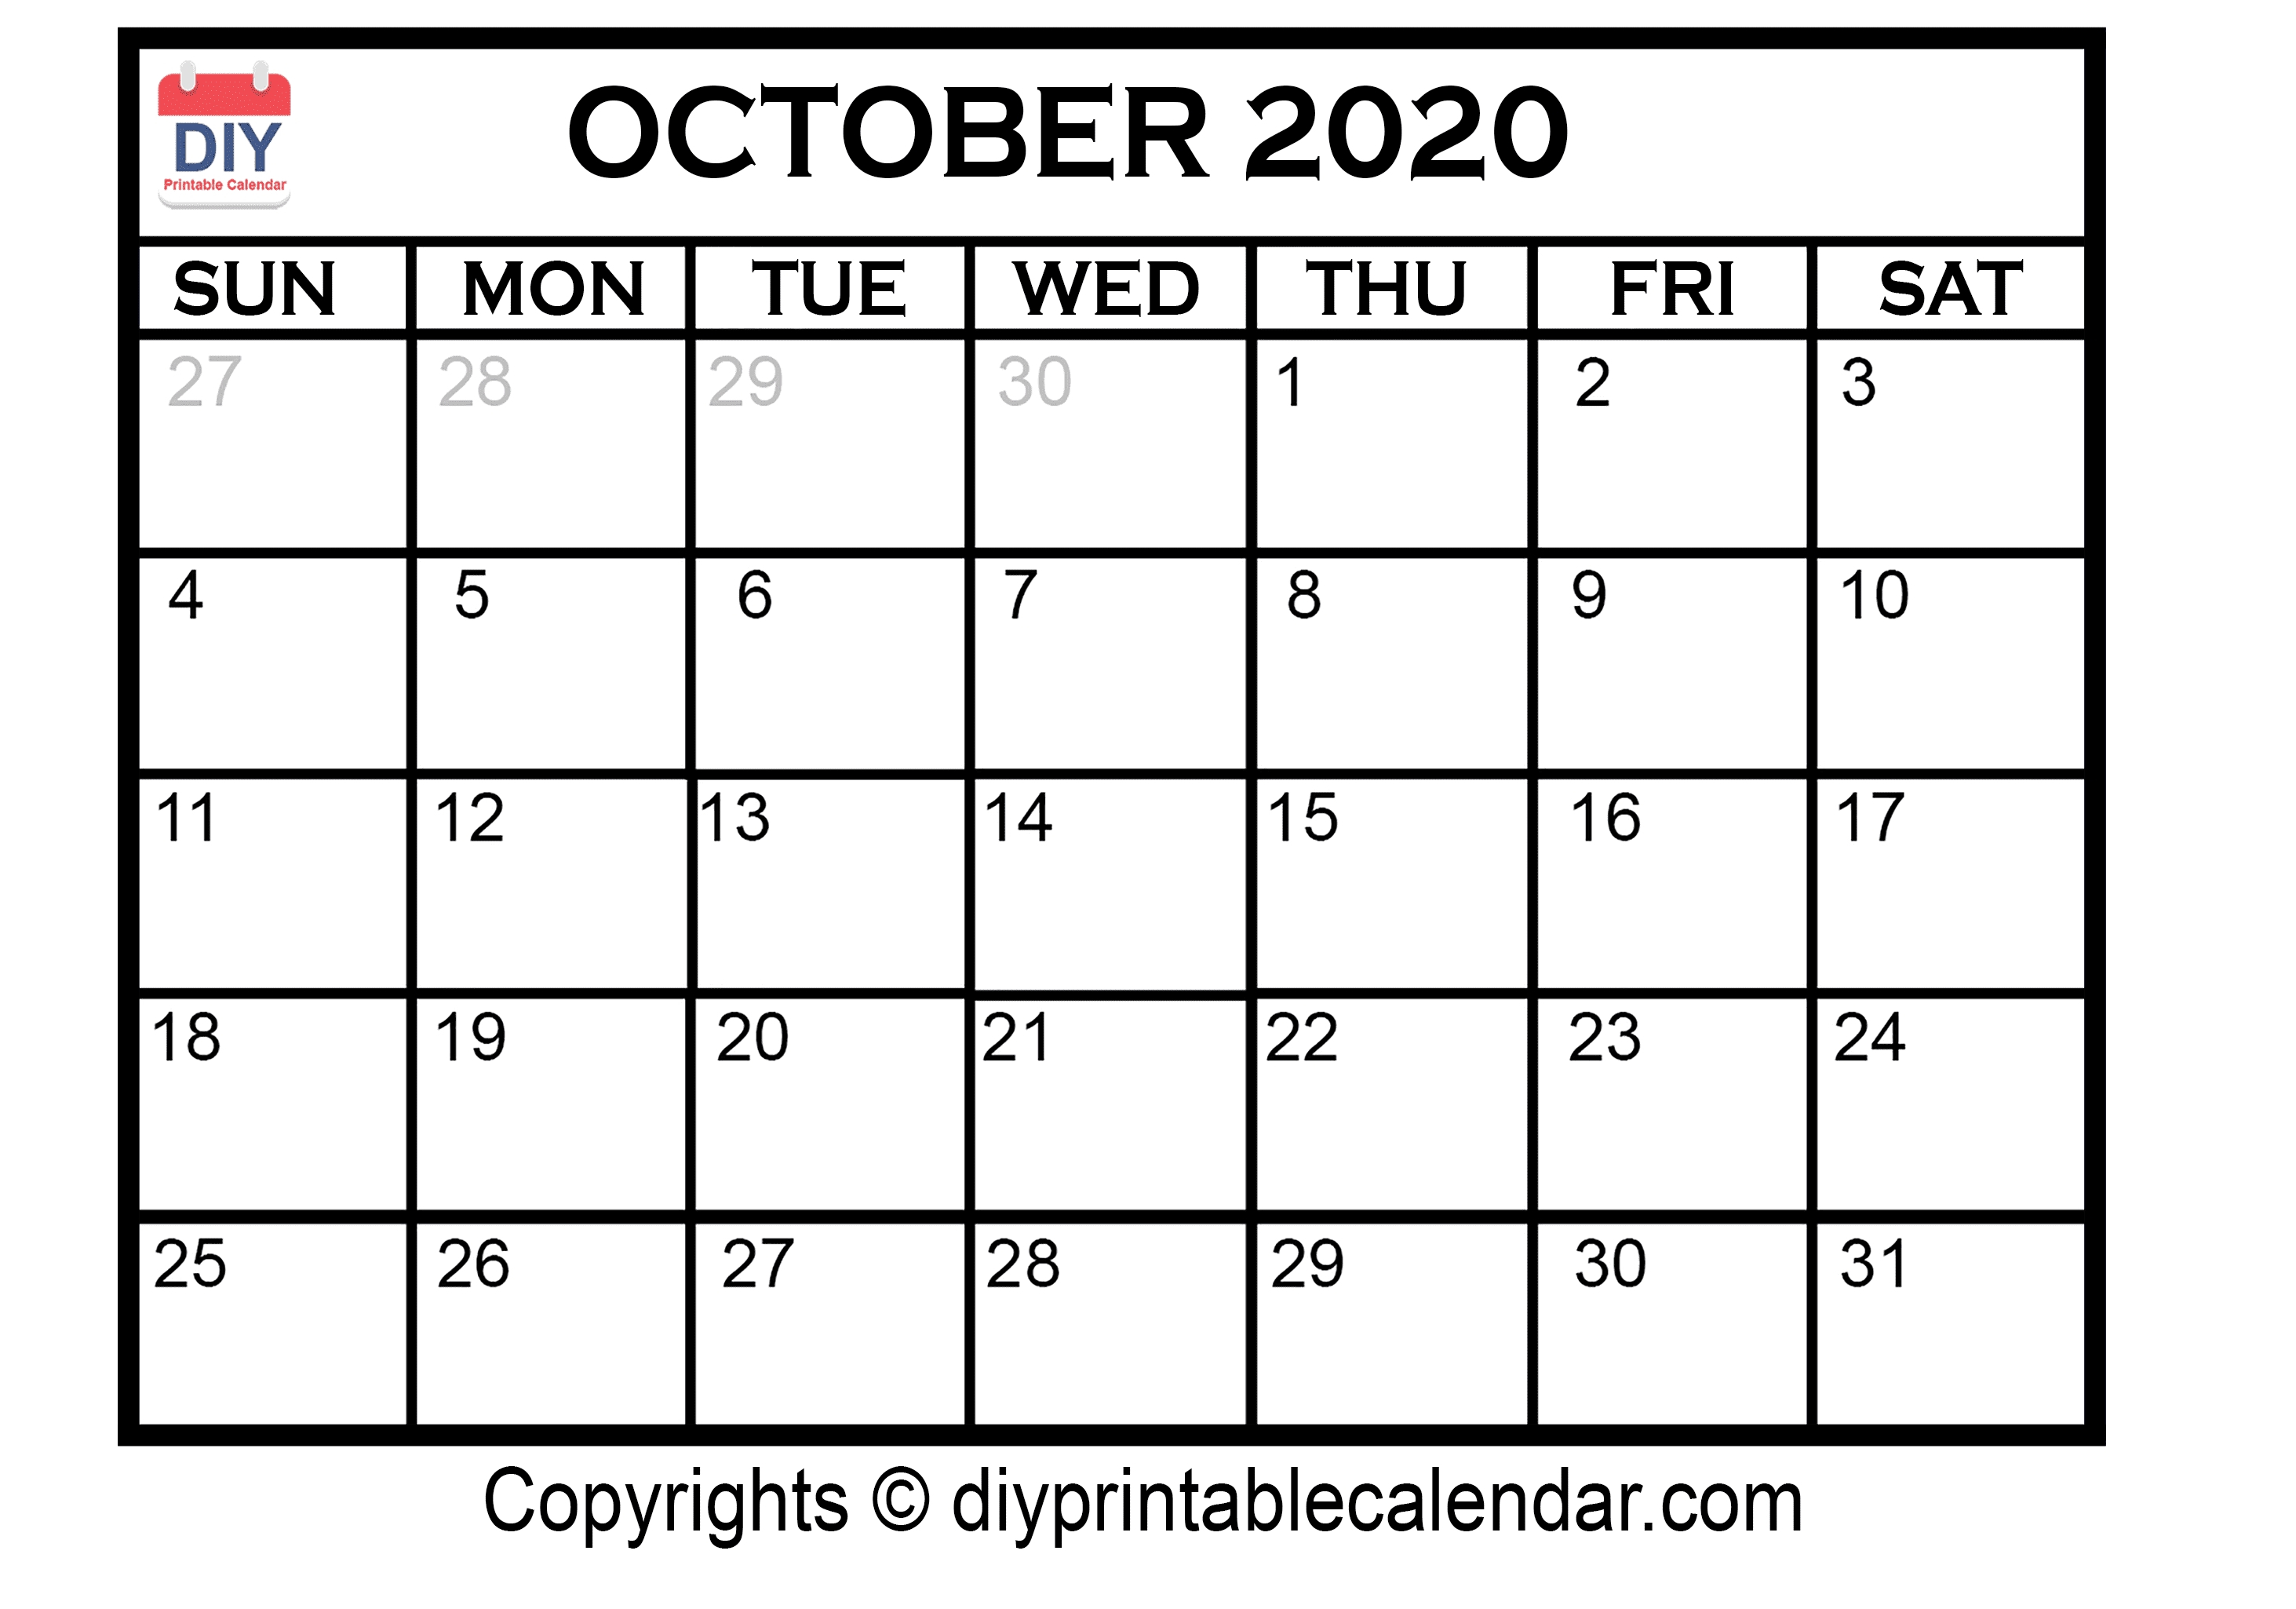 Monthly Calendar That Can Be Edited | Monthly Printable Calender Calendar That Can Be Edited